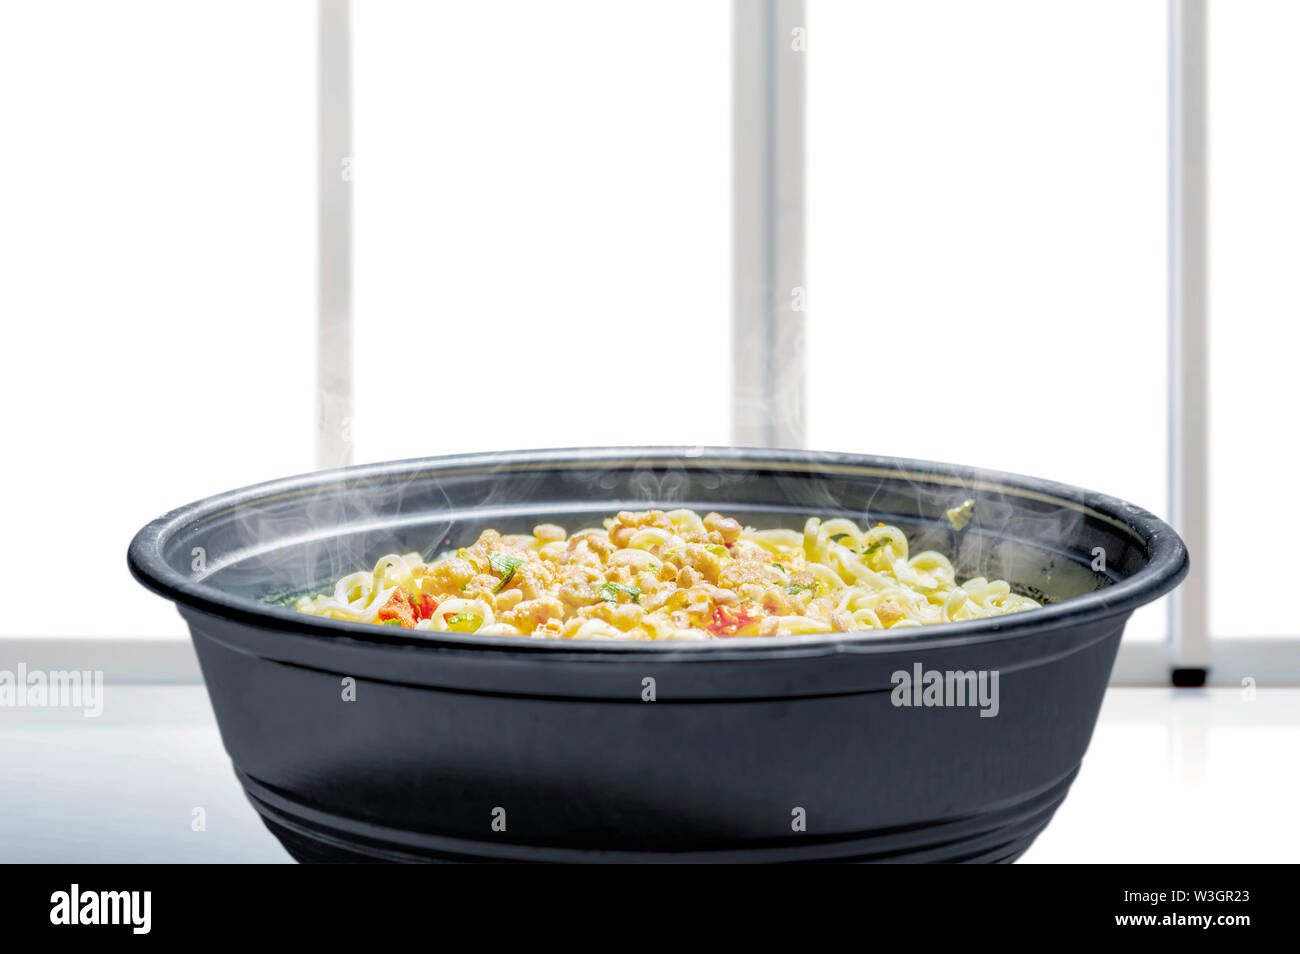 Noodles on the bowl on table with window glass background - Stock Image